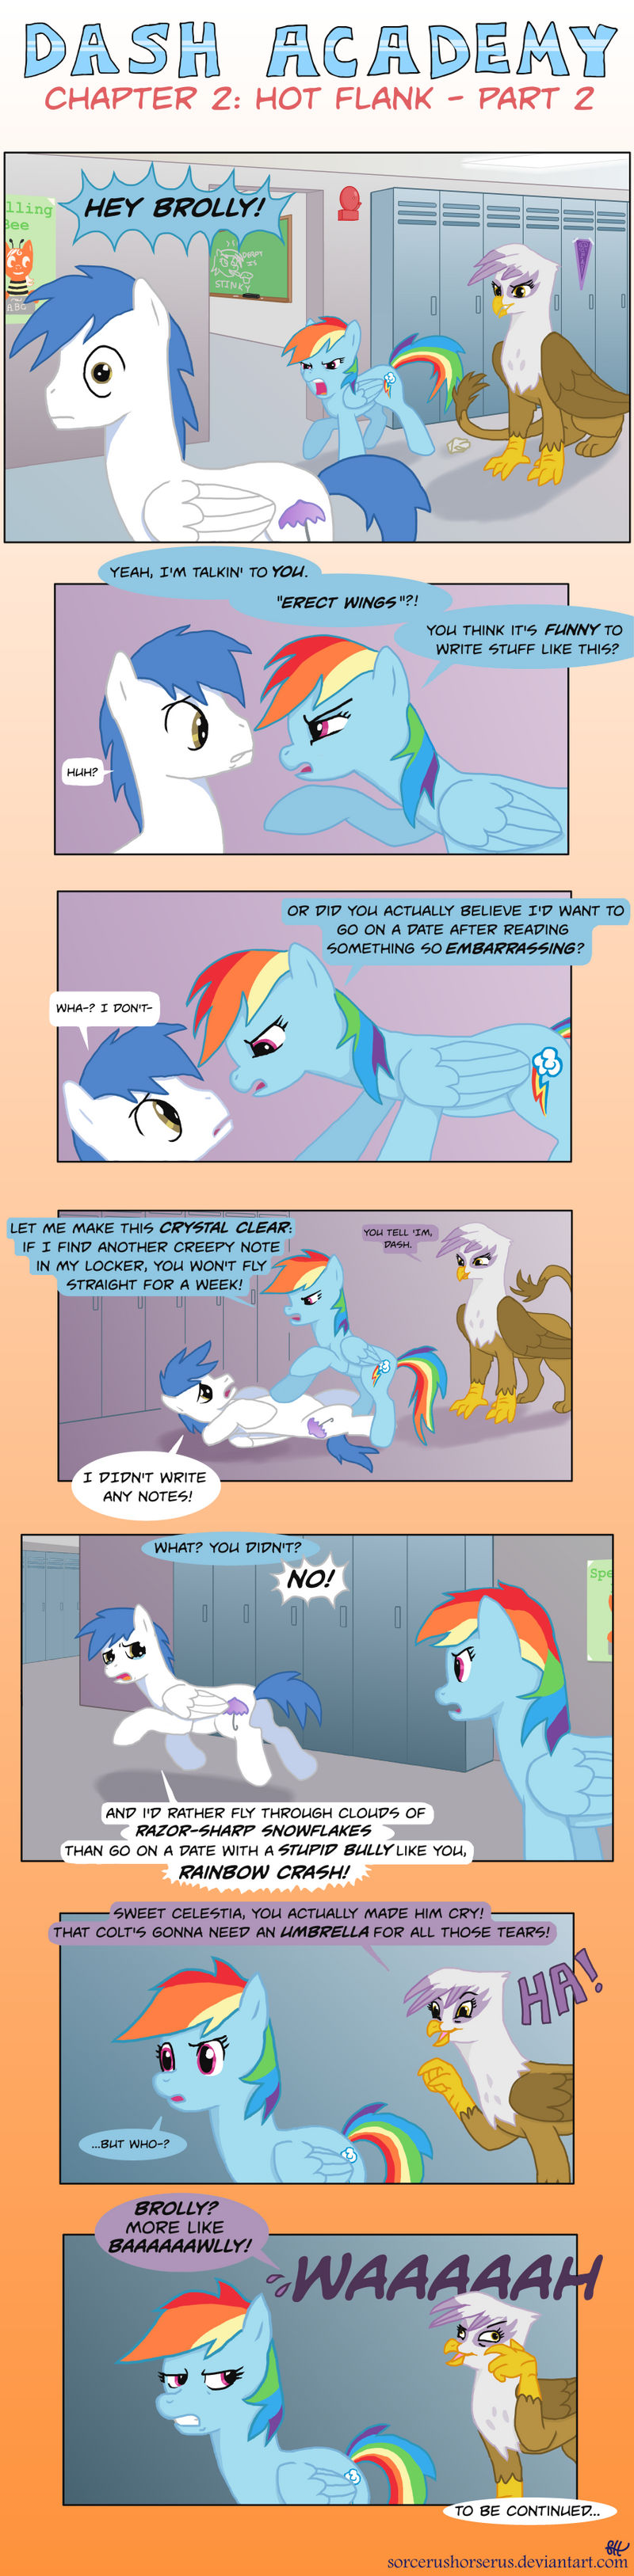 Dash Academy Chapter 2 - Hot Flank #2